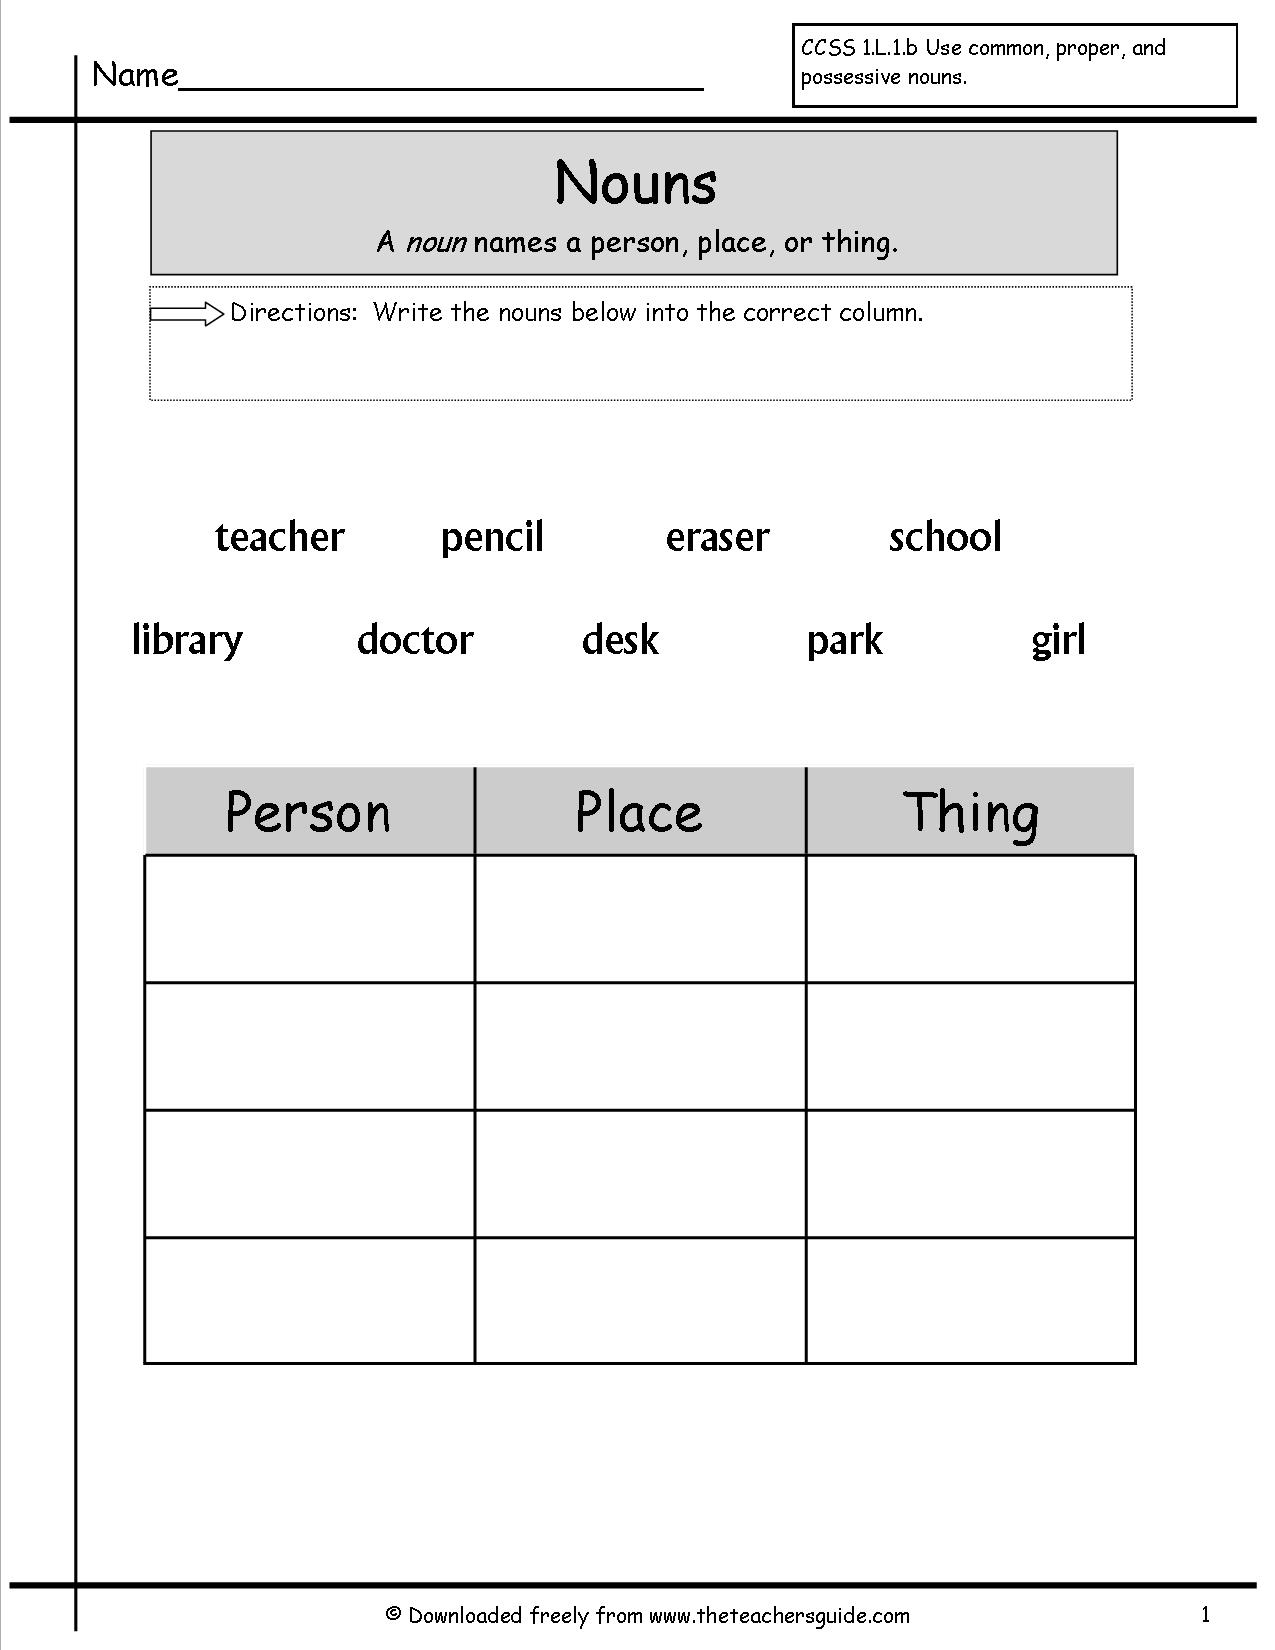 15 Best Images Of Adjectives Nouns And Verbs Worksheets